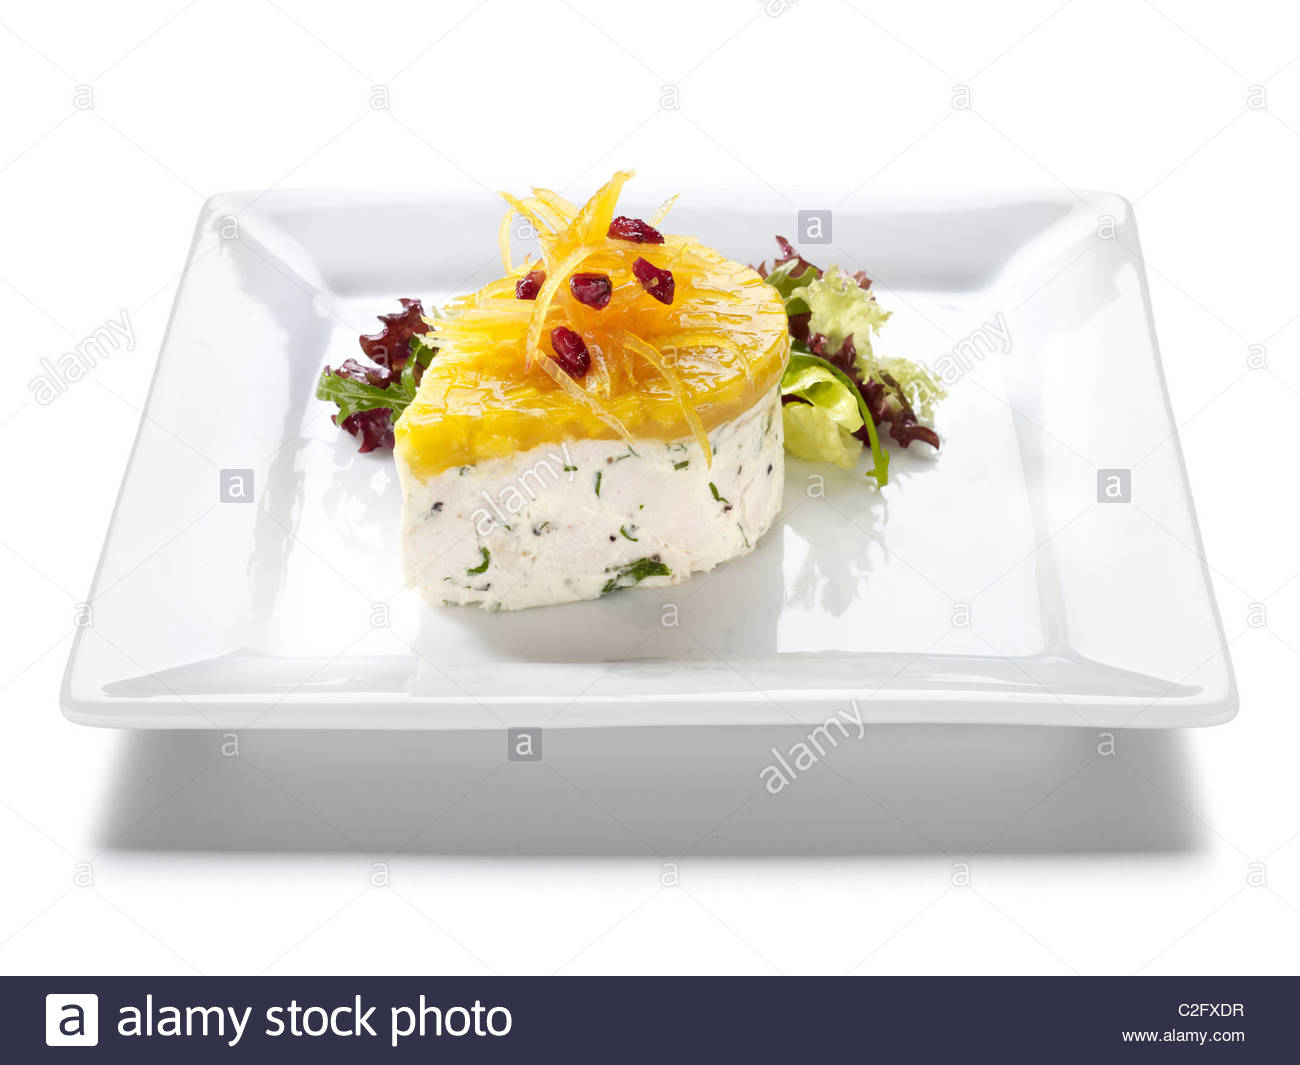 herb cream cheese and fruit starter - Stock Image